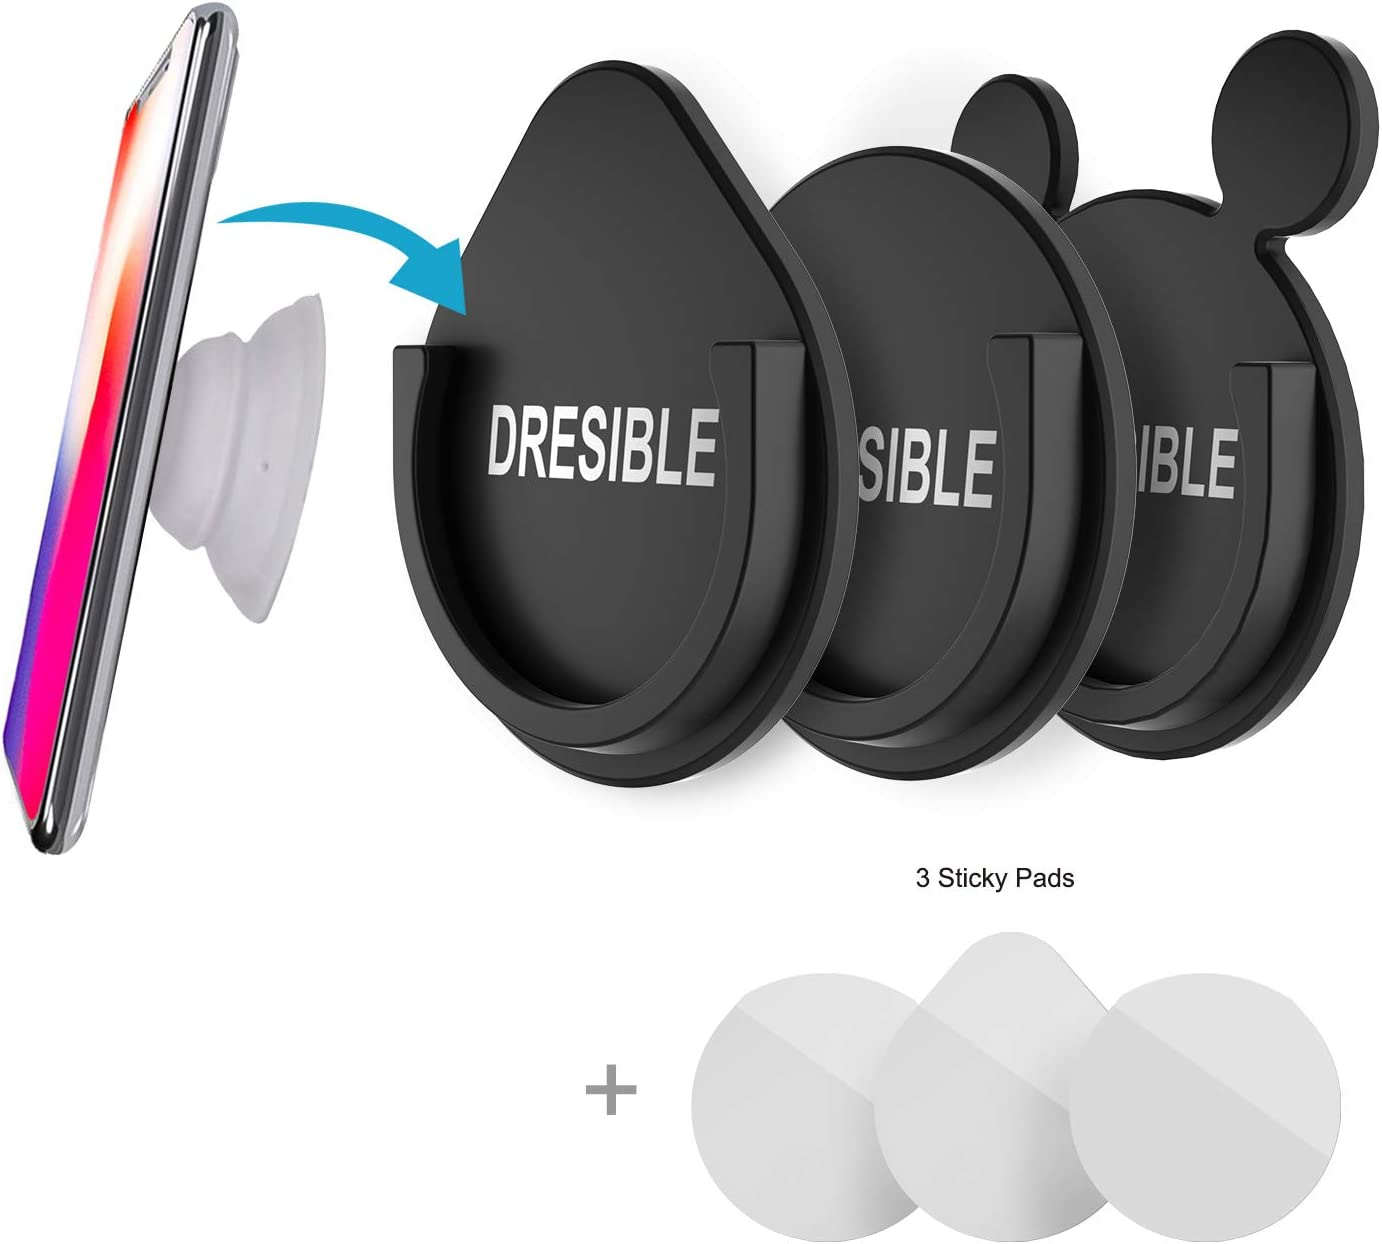 3 Pack Car Phone Mount for Socket Stands and Grips,DRESIBLE Universal Phone Grip Mount with Heavy Duty Adhesive Sticks Car Phone Holder for Dashboard Office Bathroom Kitchen